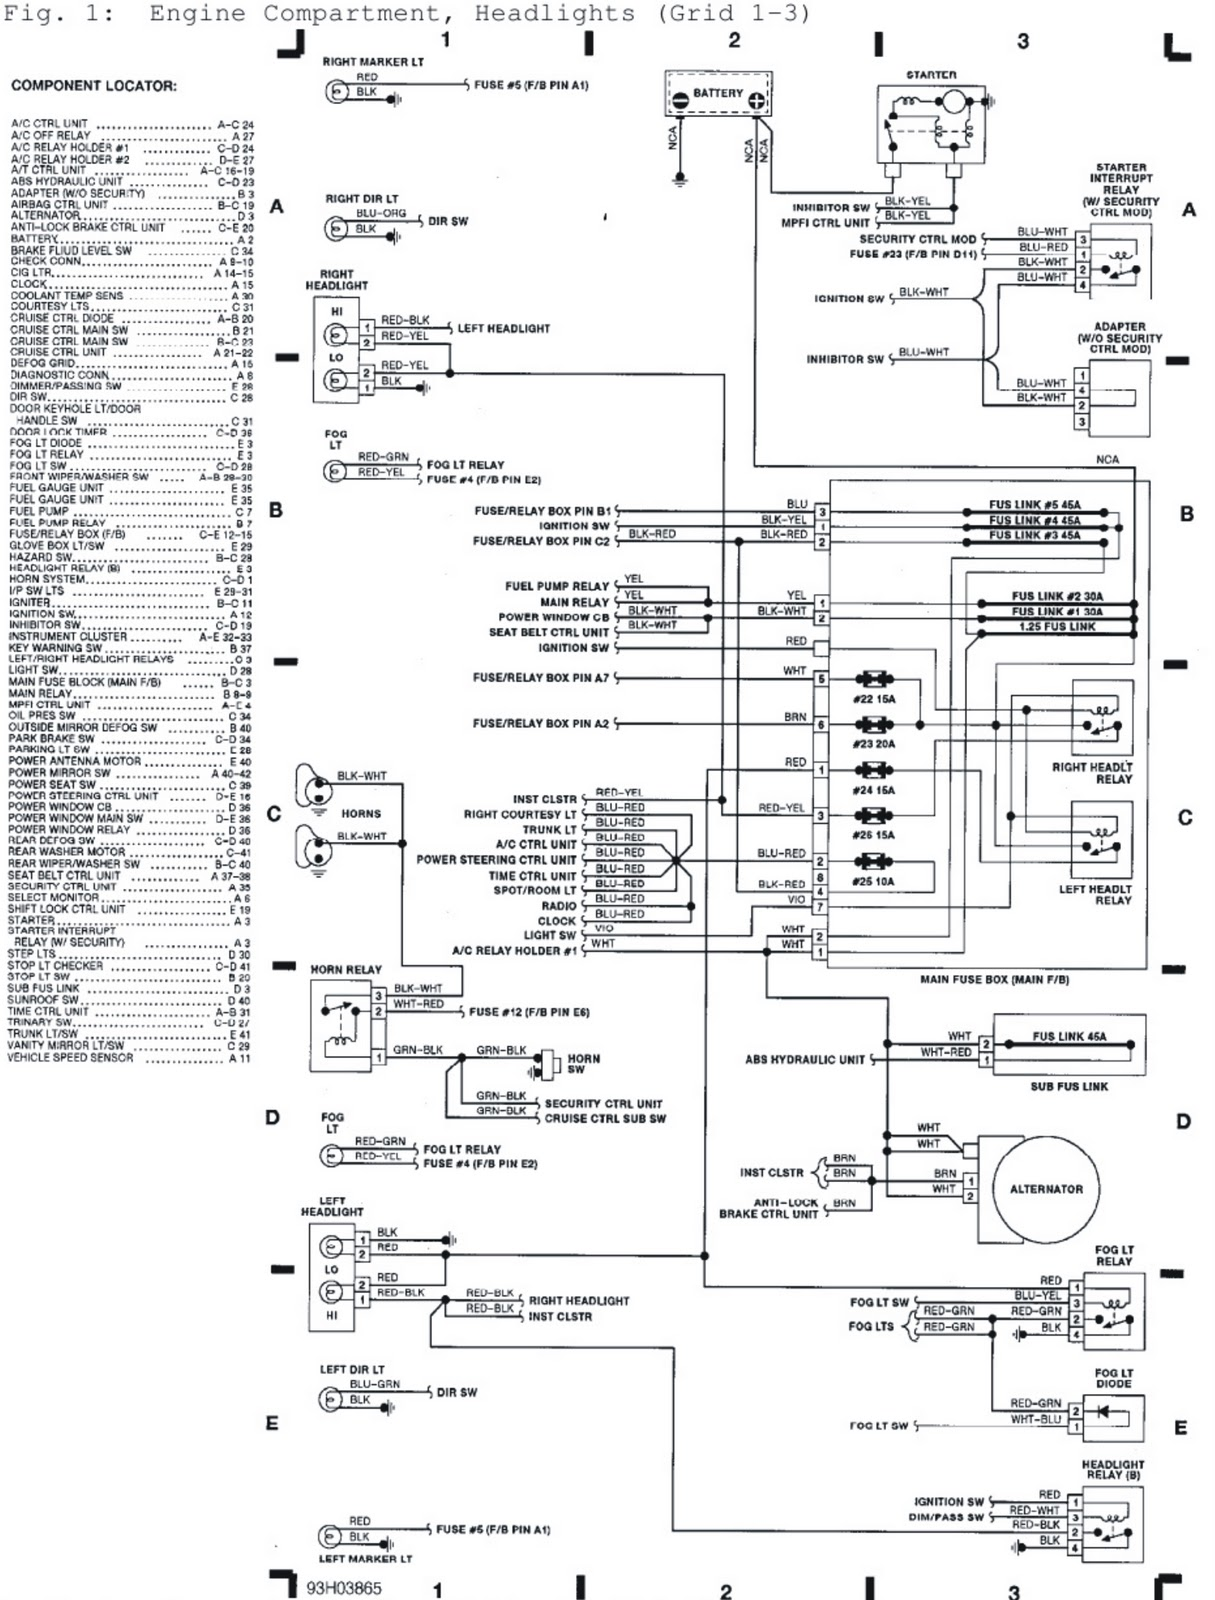 2009 Mini Cooper S Engine Diagram Wiring Source Ford Edge Schematic 1992 Subaru Svx Partment On